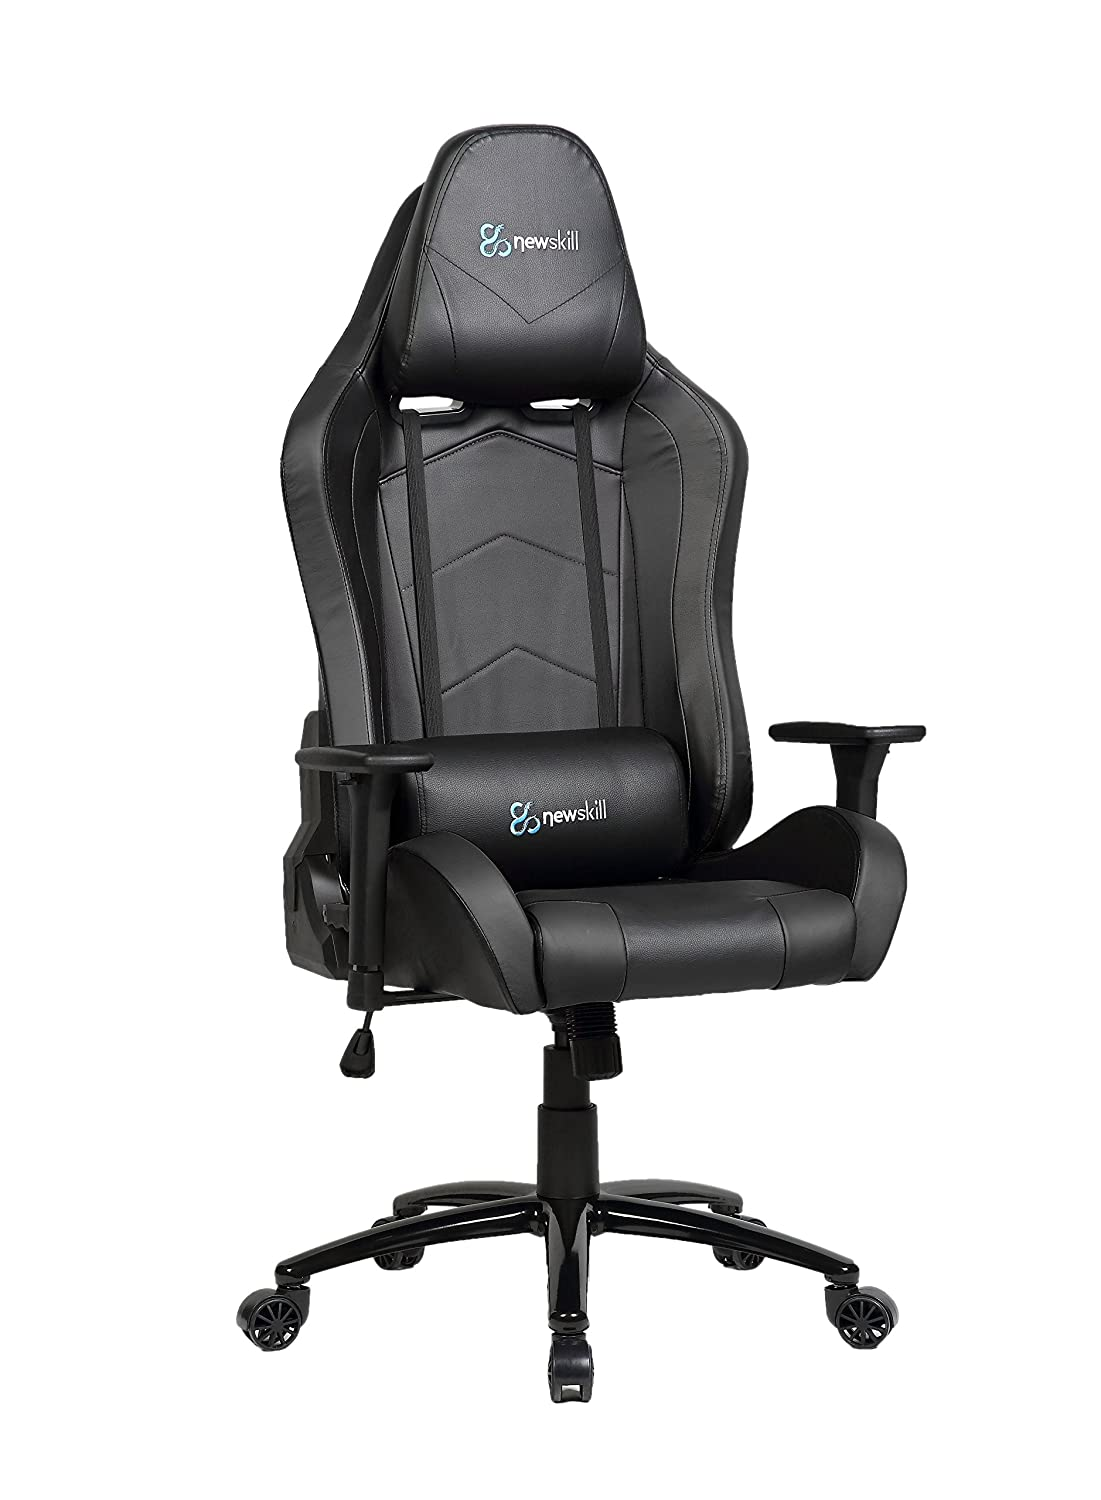 Newskill Takamikura - Silla Gaming Profesional (inclinación y Altura Regulable, reposabrazos Ajustables, reclinable 180º), Color Negra: Amazon.es: ...